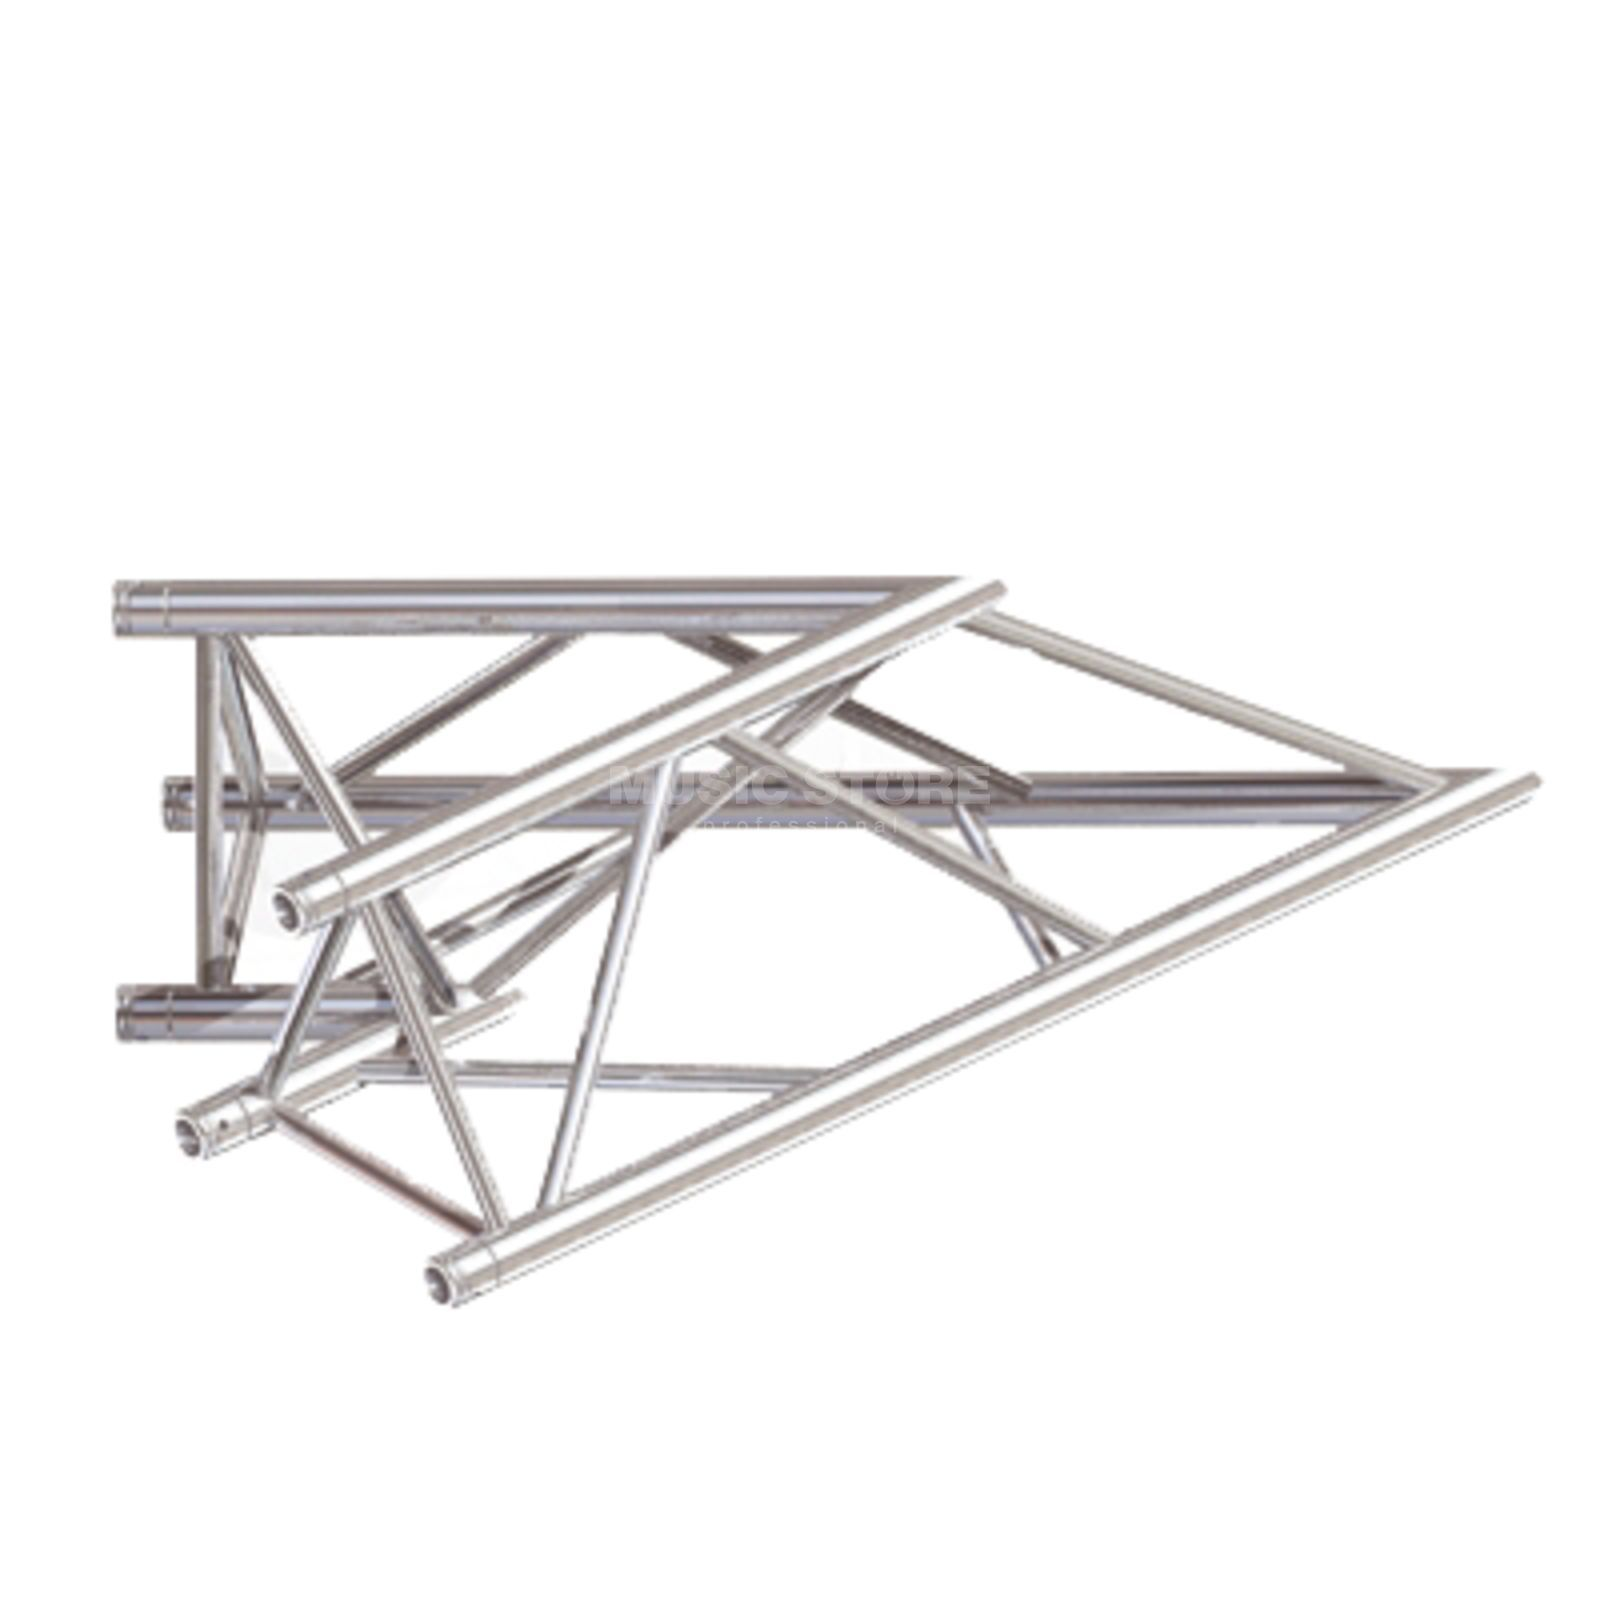 Global Truss F43 2-Way Corner C19 45°  Produktbillede